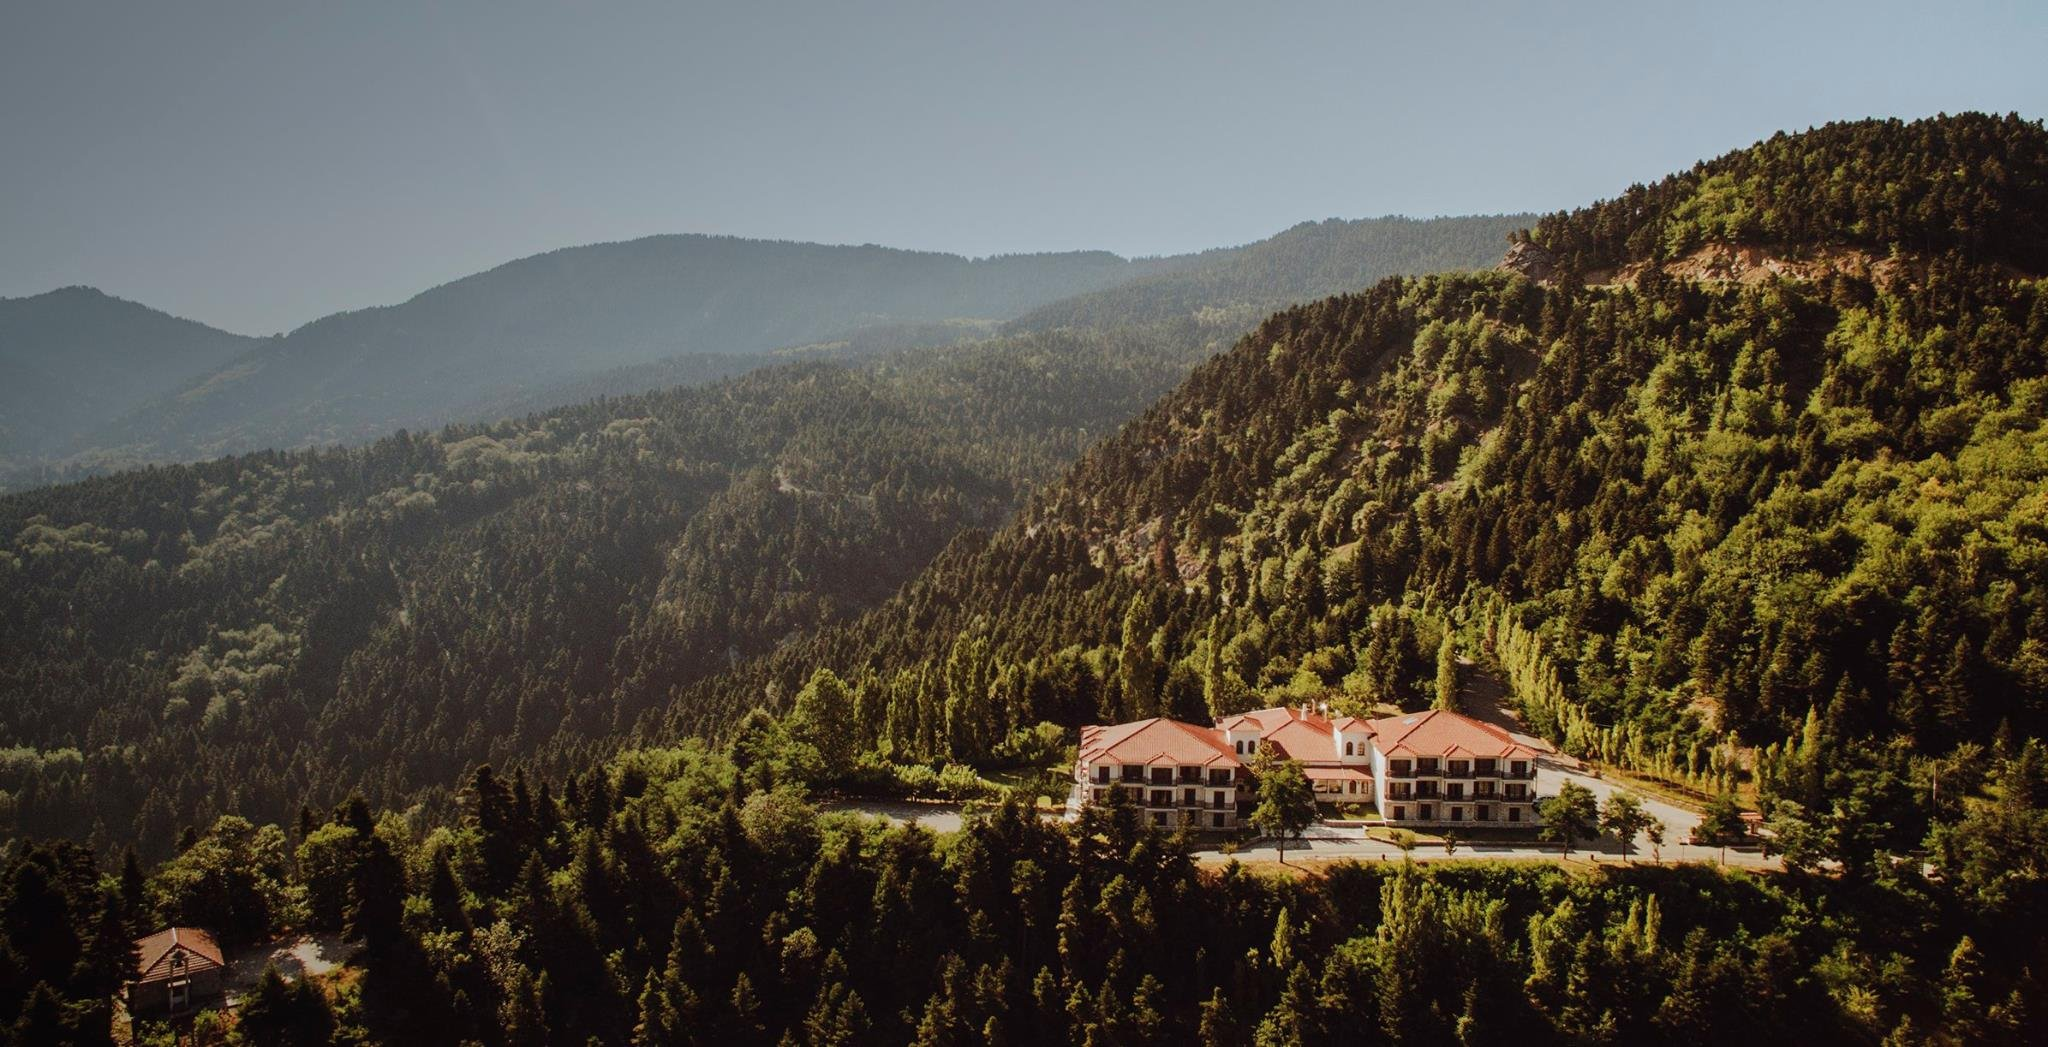 Crystal Mountain Hotel